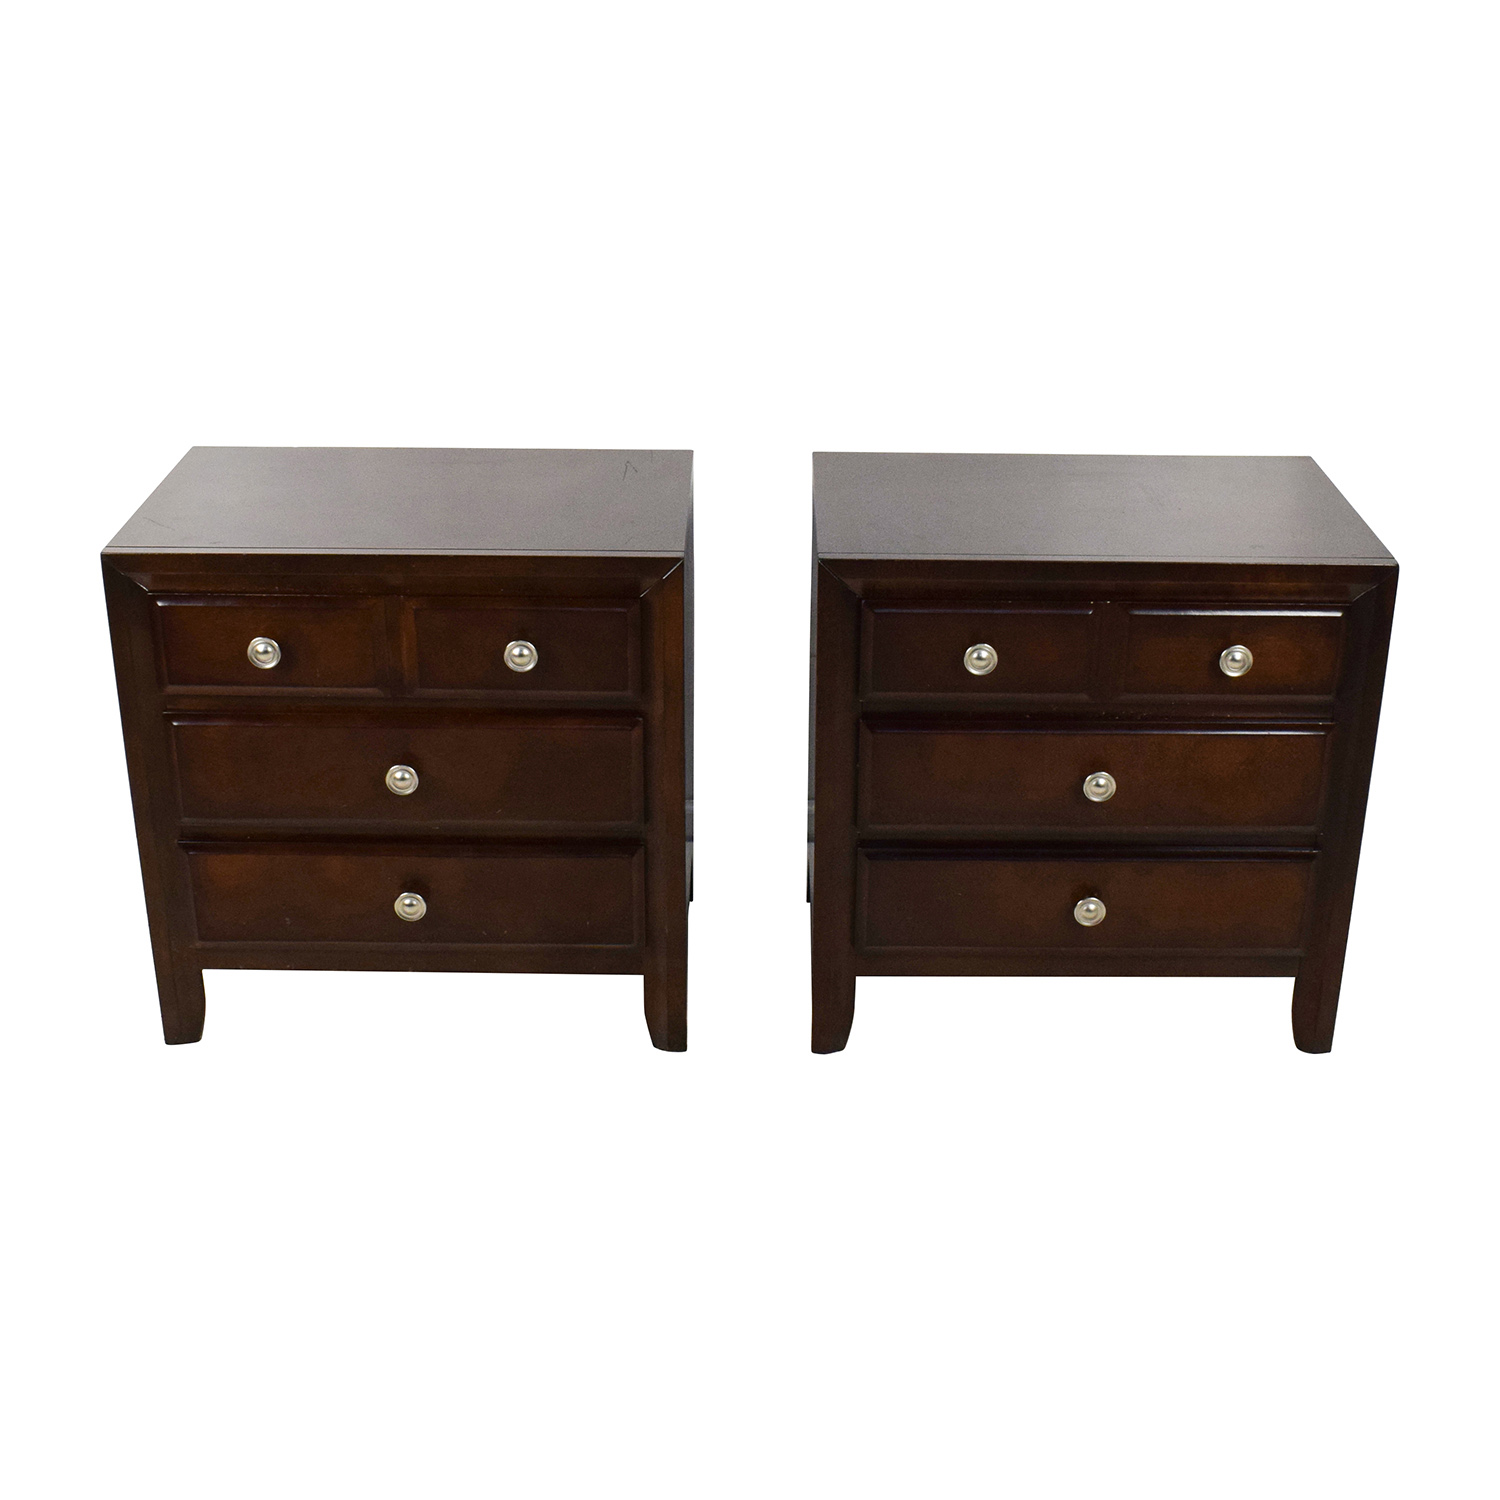 Raymour and Flanigan Raymour & Flanigan Three Drawer Wood Nightstands coupon